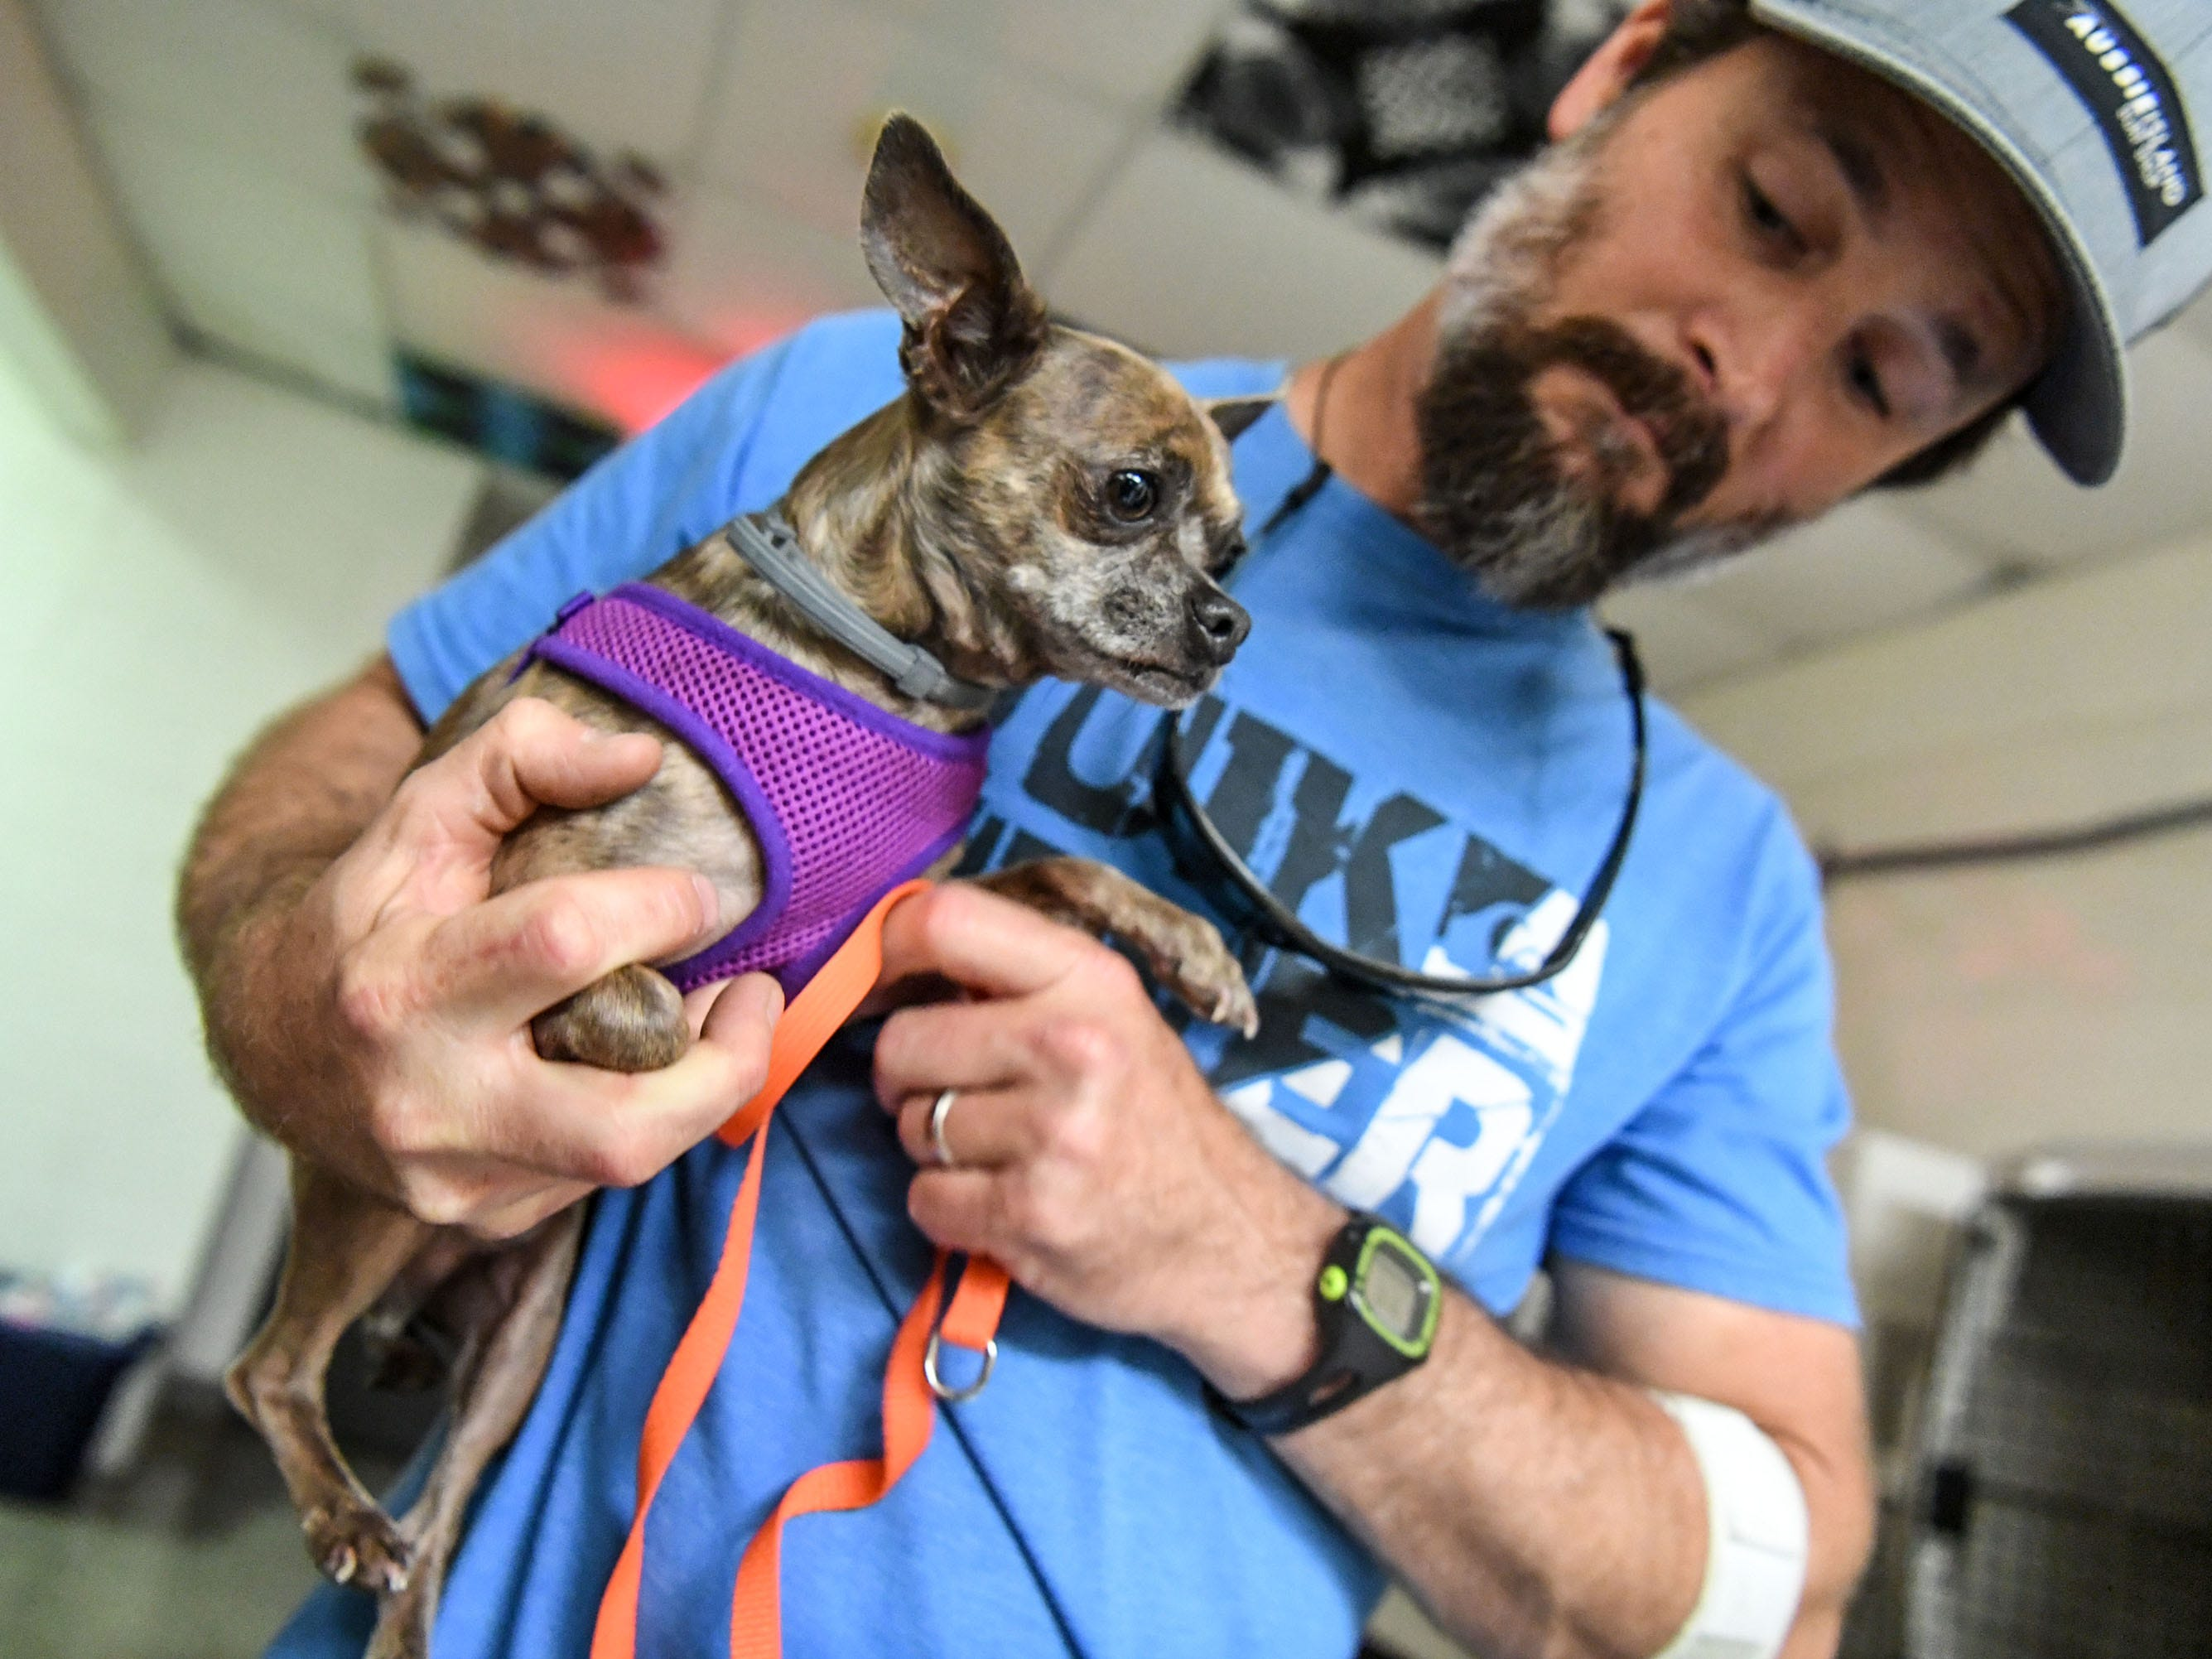 Jameson McDermott holds a dog at the county emergency shelter held at Trask Middle School in Wilmington, N.C. Sept. 11, 2018.